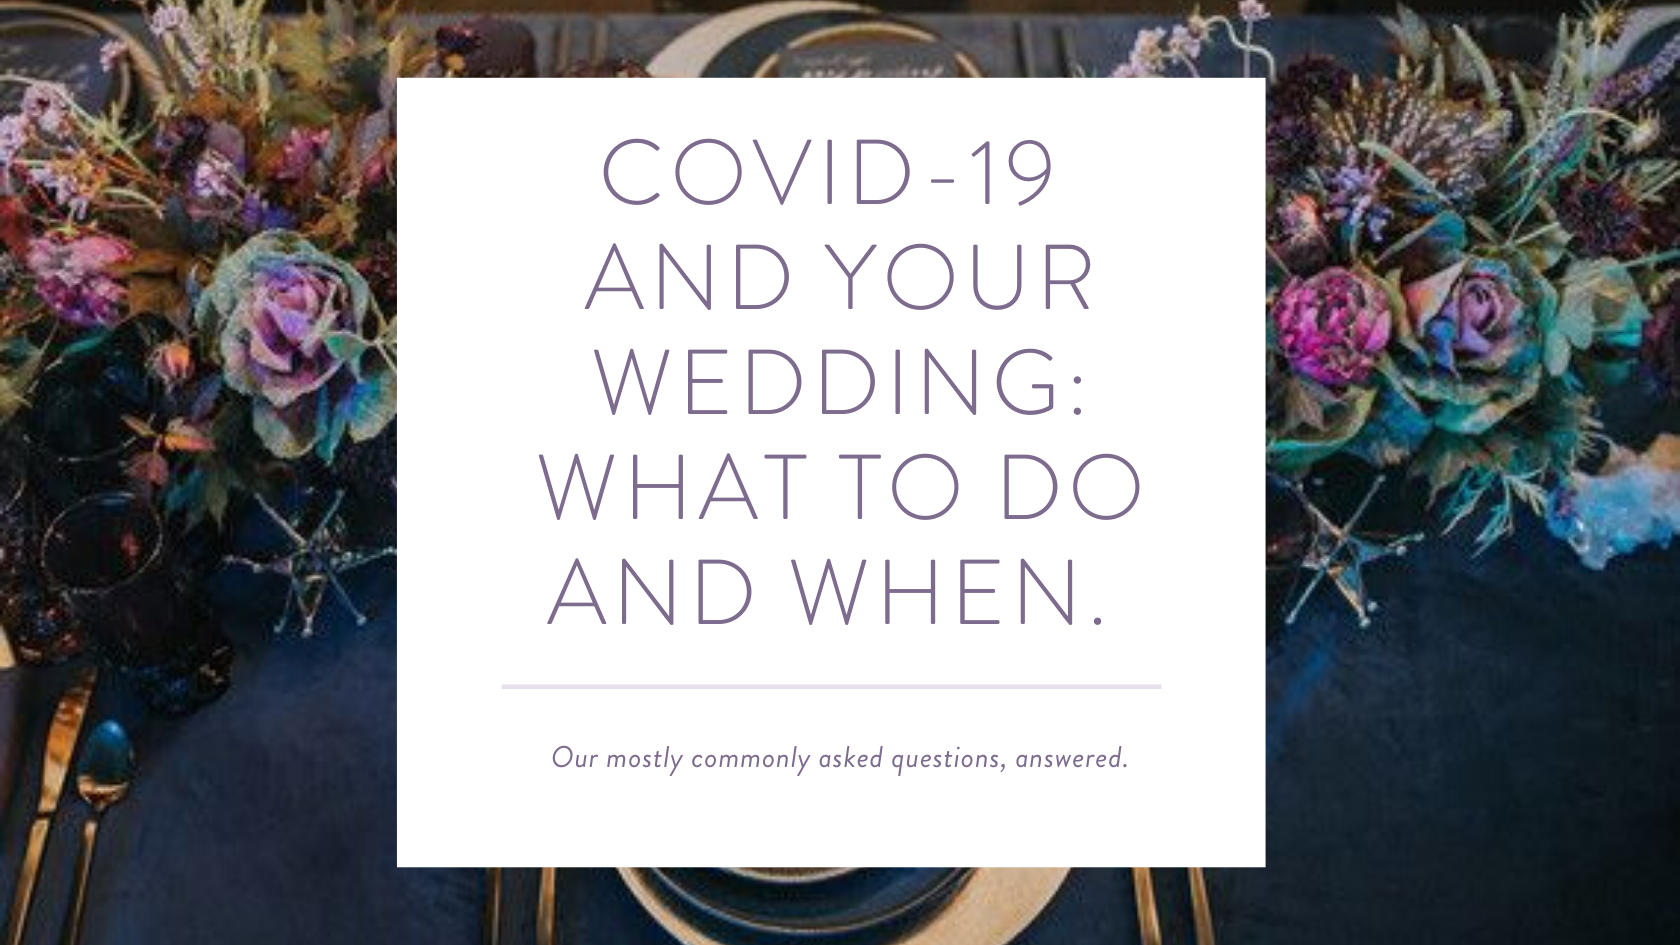 COVID-19 and Your Wedding